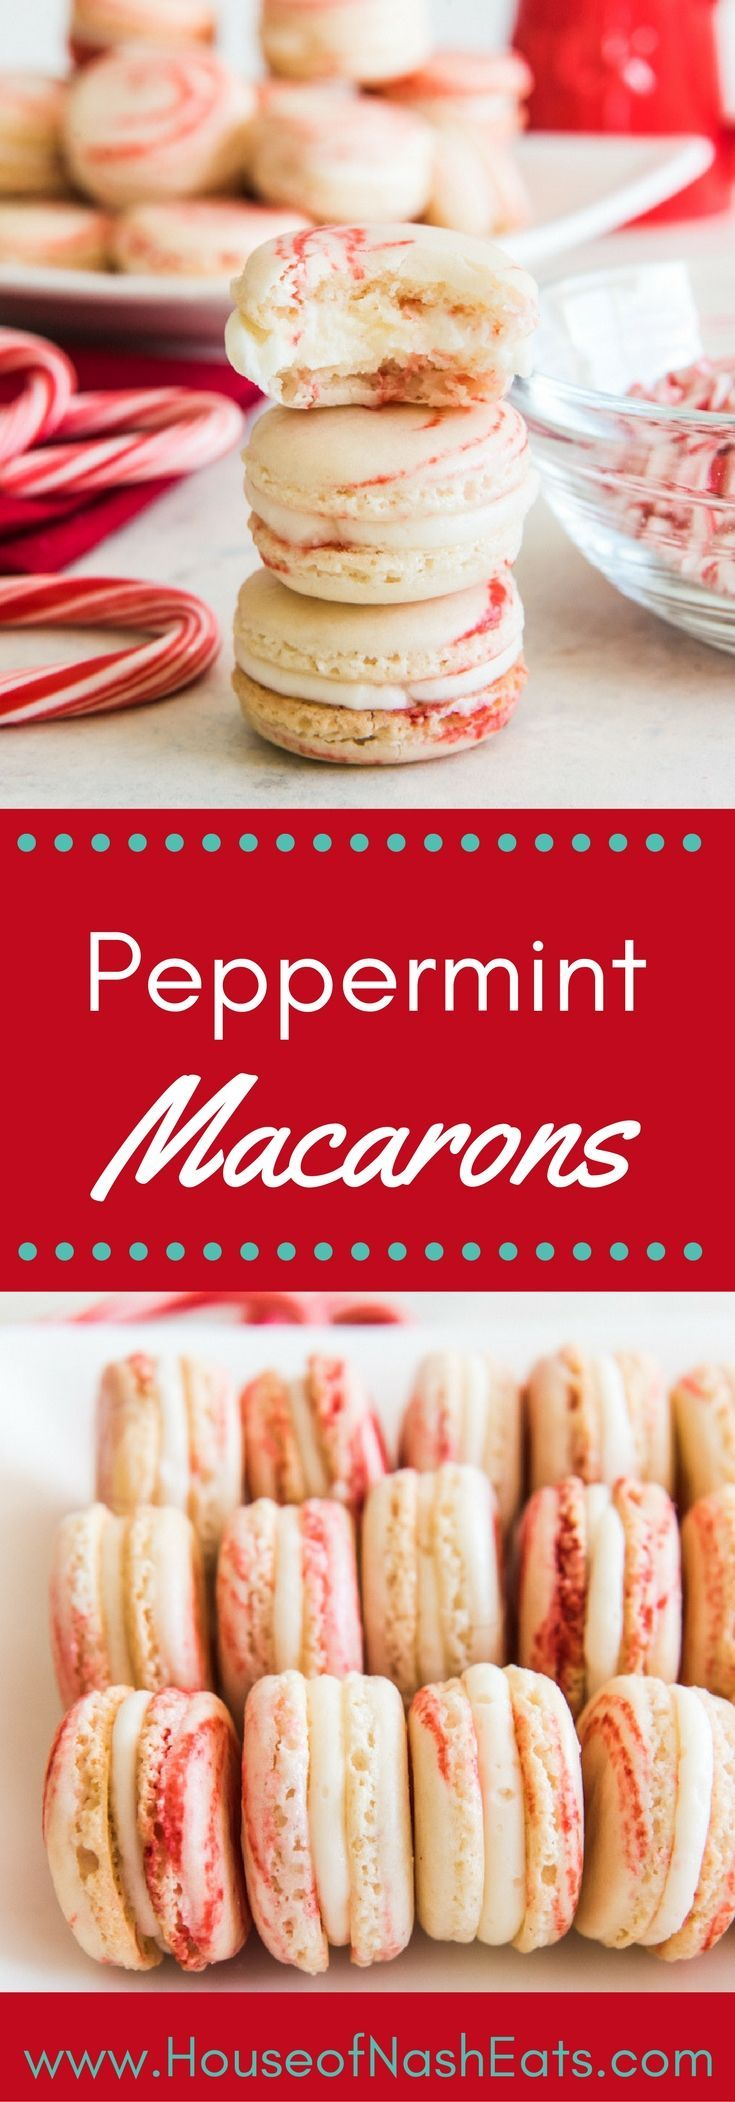 Peppermint Macarons are the sweetest, most melt-in-your-mouth delicious Christmas cookie with a wonderful vanilla peppermint buttercream filling. They fancy up a Christmas cookie platter or Christmas cookie exchange with one of the best flavors of the holiday season! #christmas #cookies #macarons #peppermint #ChristmasCookies [ad]